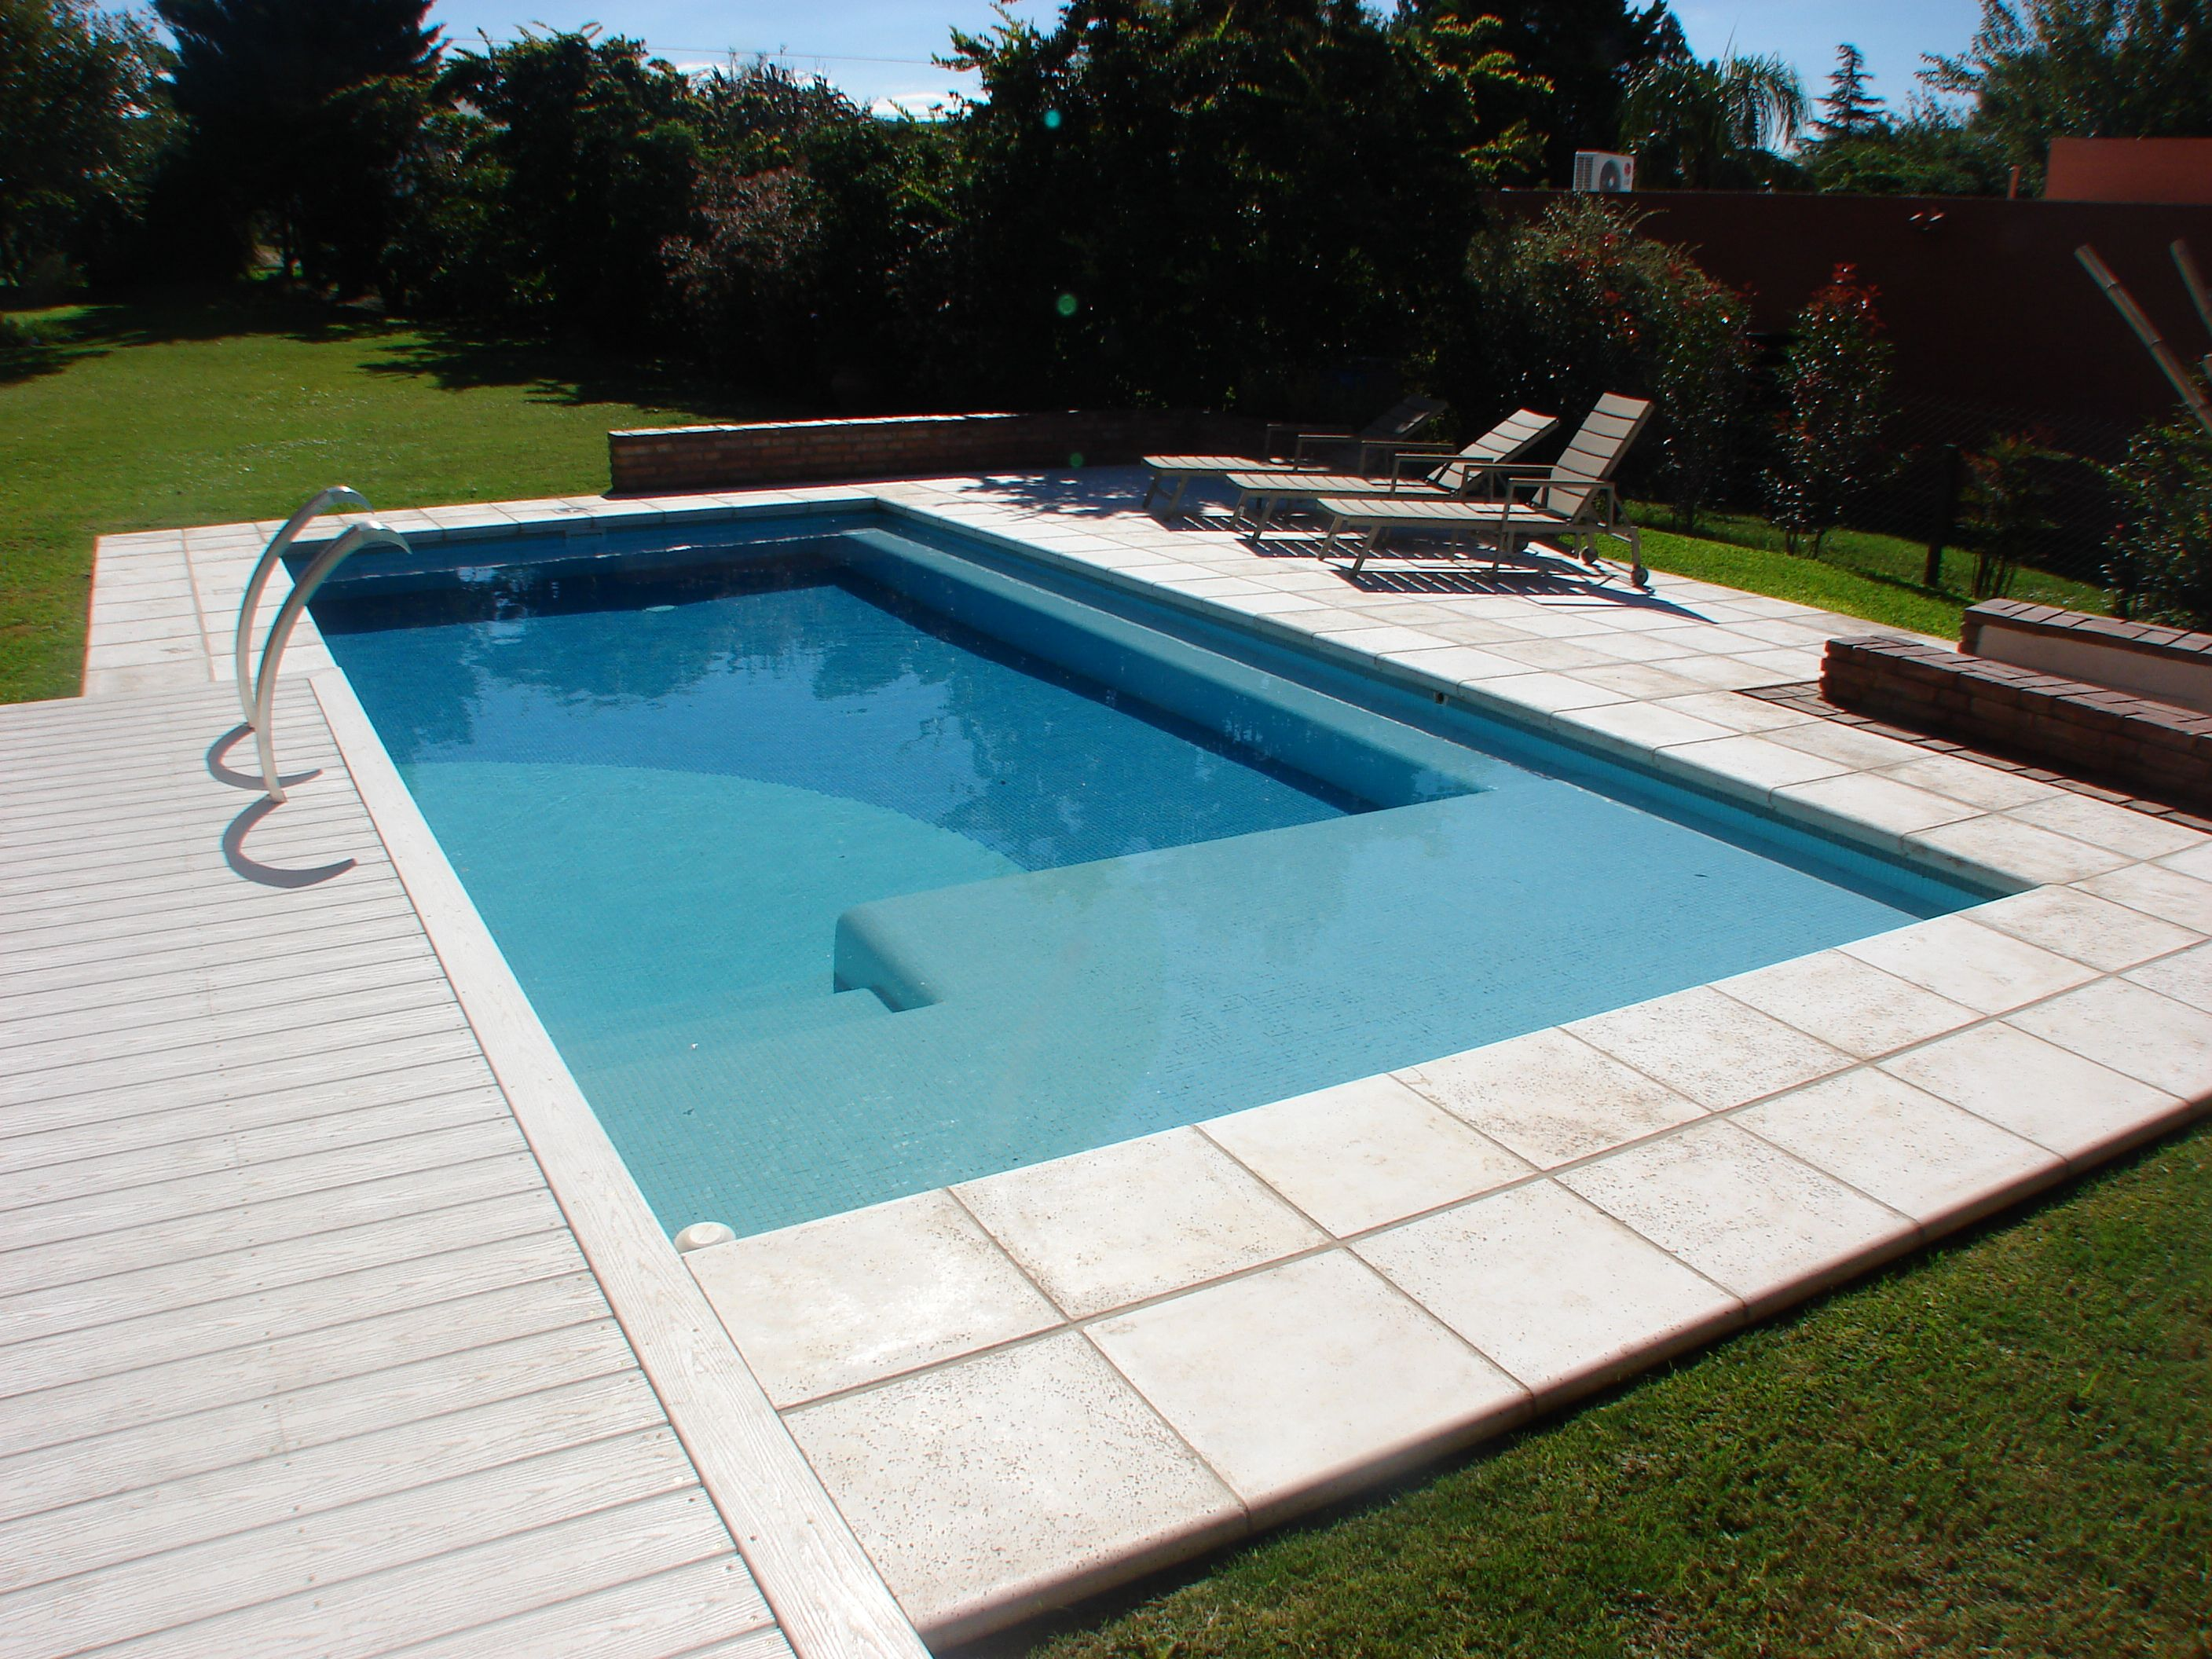 Arquitectura hidro deck wellnes swimmingpool for Disenos de piletas